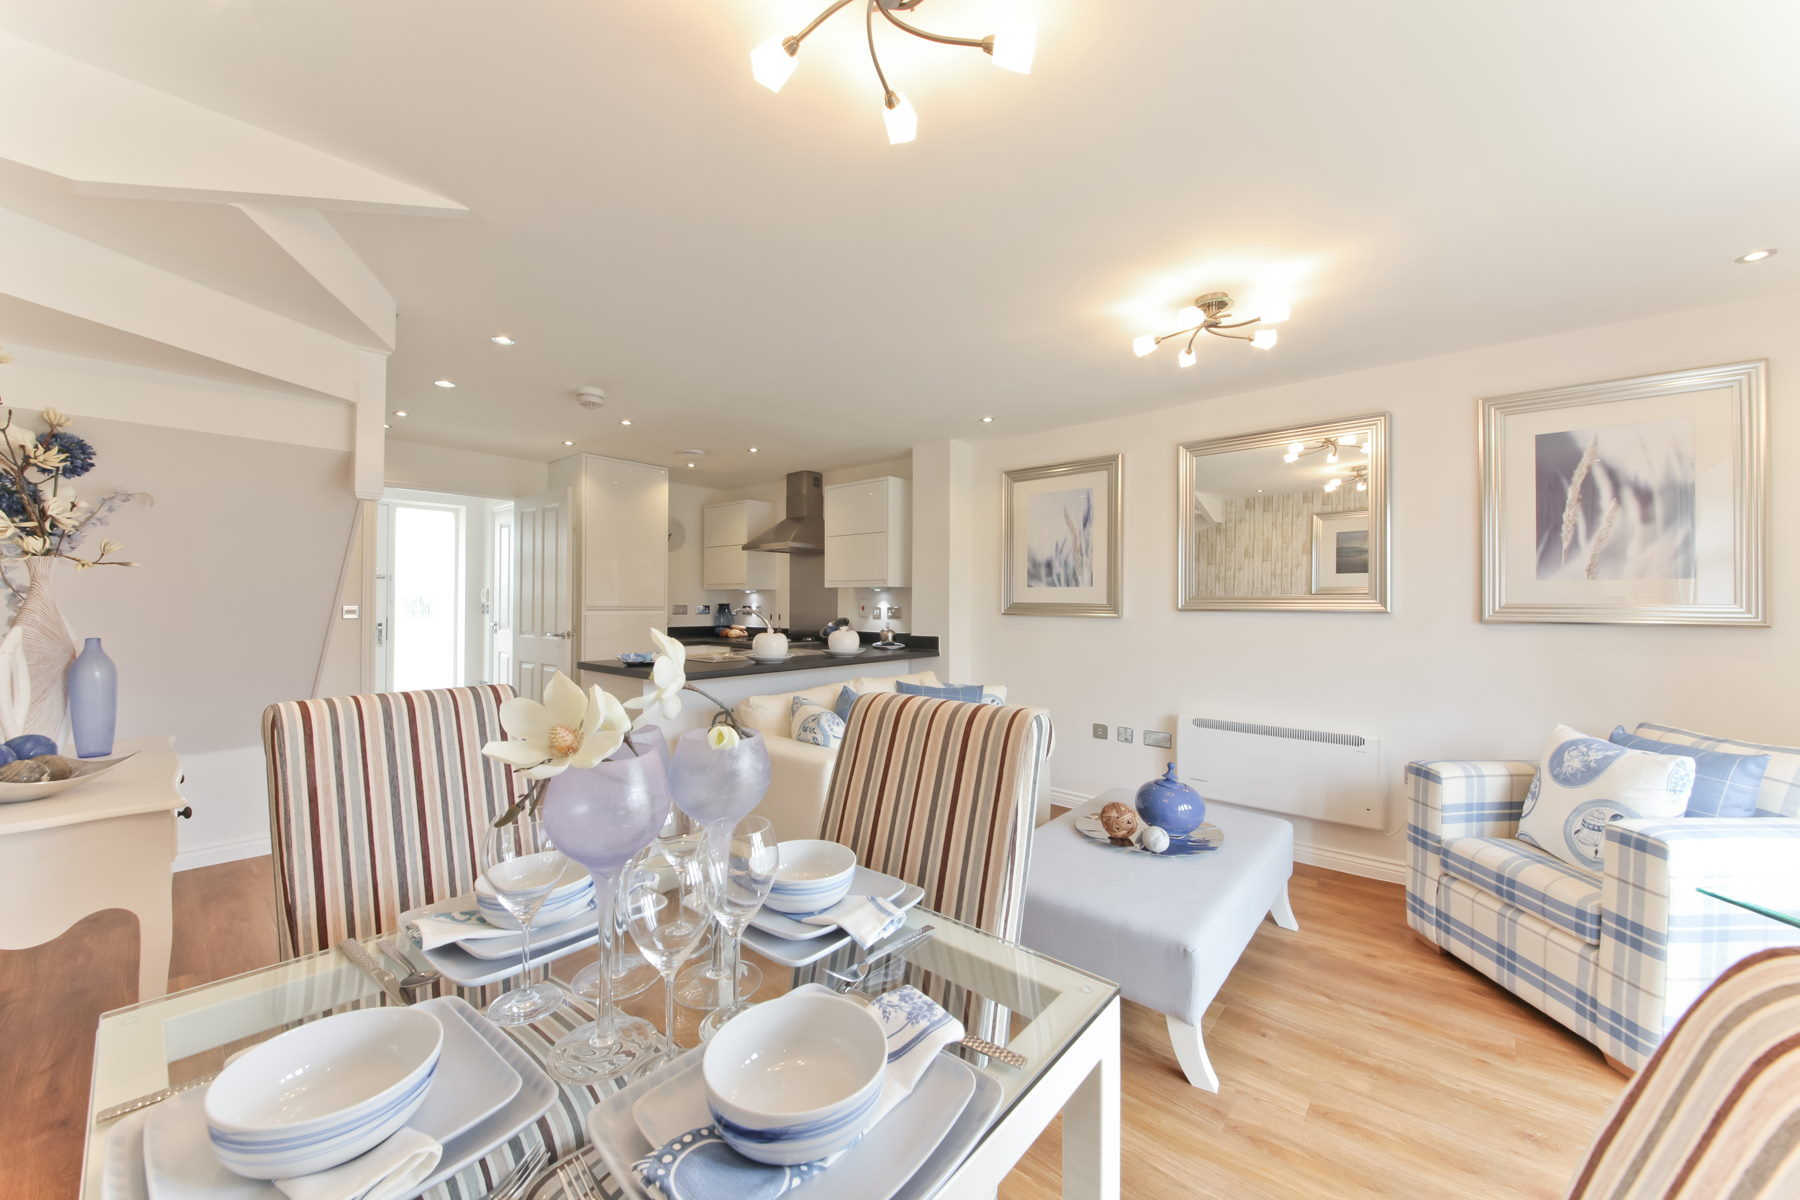 Typical Taylor Wimpey home - Kitchen and living area